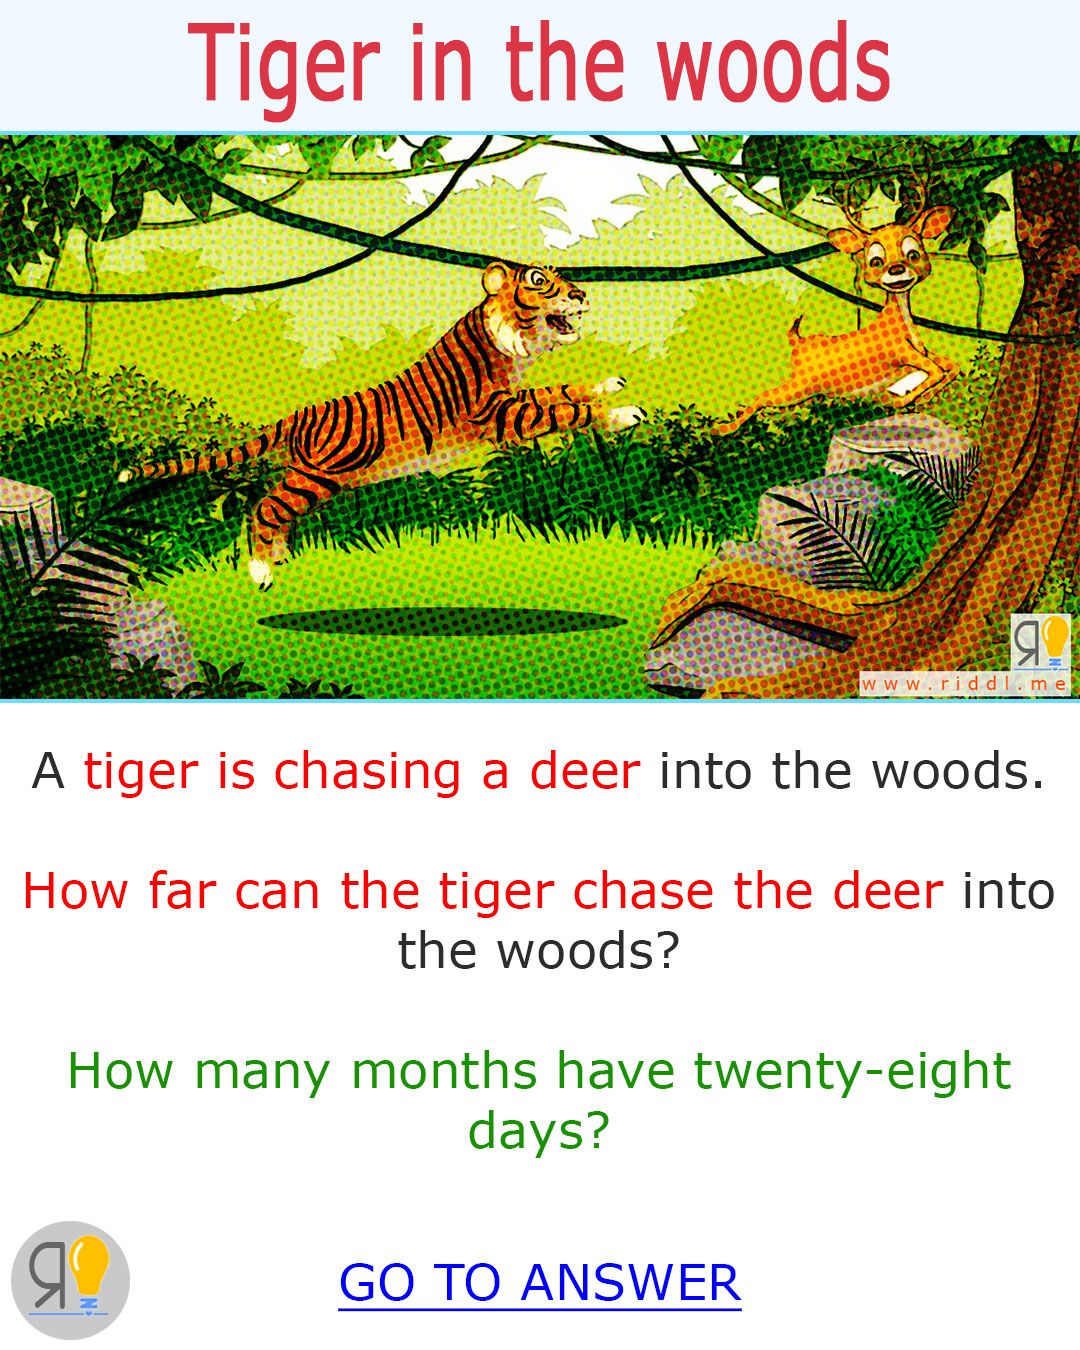 For all you riddle games fans. Here's a riddle for kids